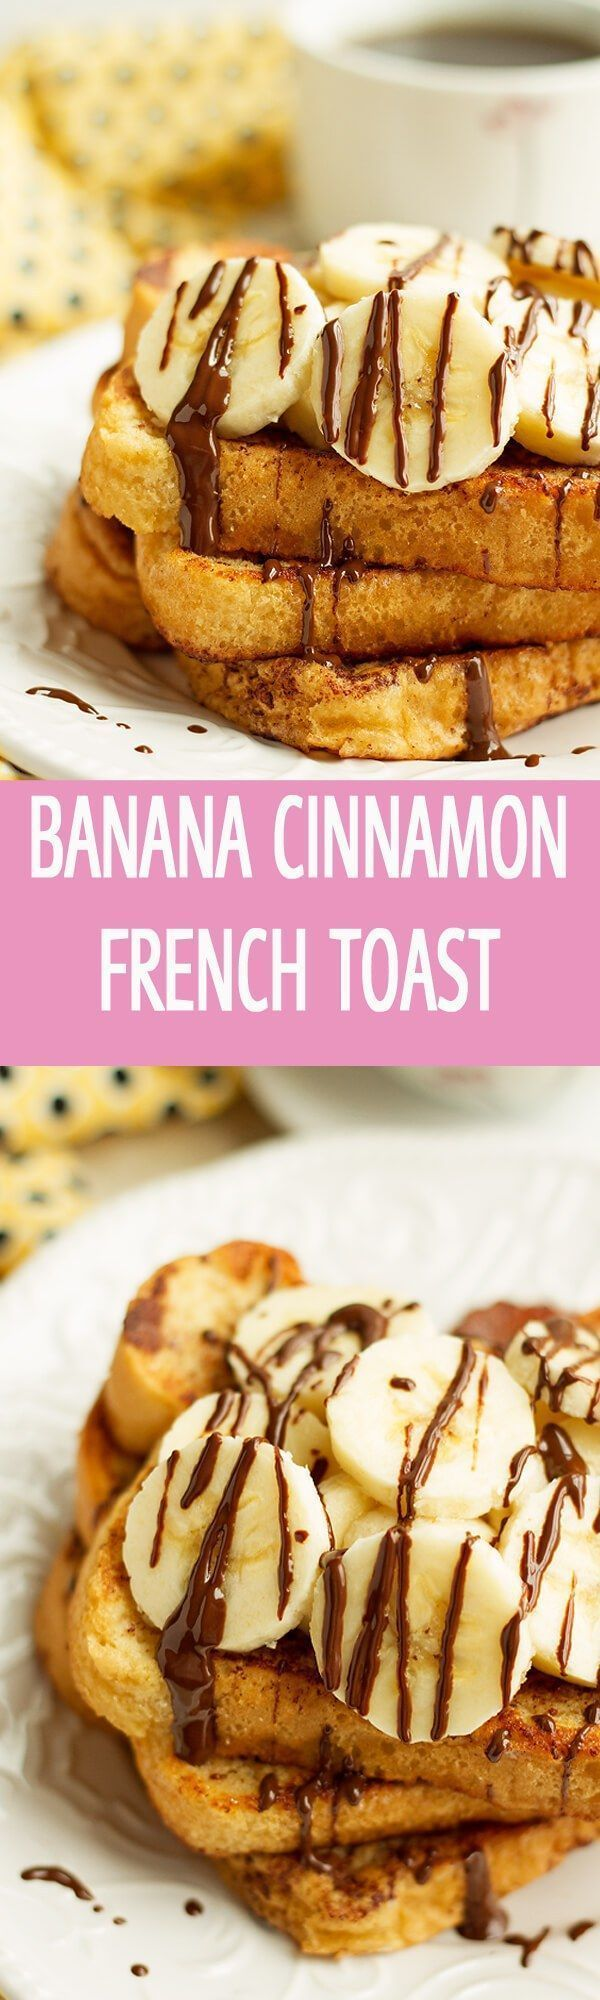 The most easiest banana cinnamon french toast recipe is perfect for breakfast or brunch. 6 ingredients cinnamon french toast is drizzled with chocolate by http://ilonaspassion.com I /ilonaspassion/